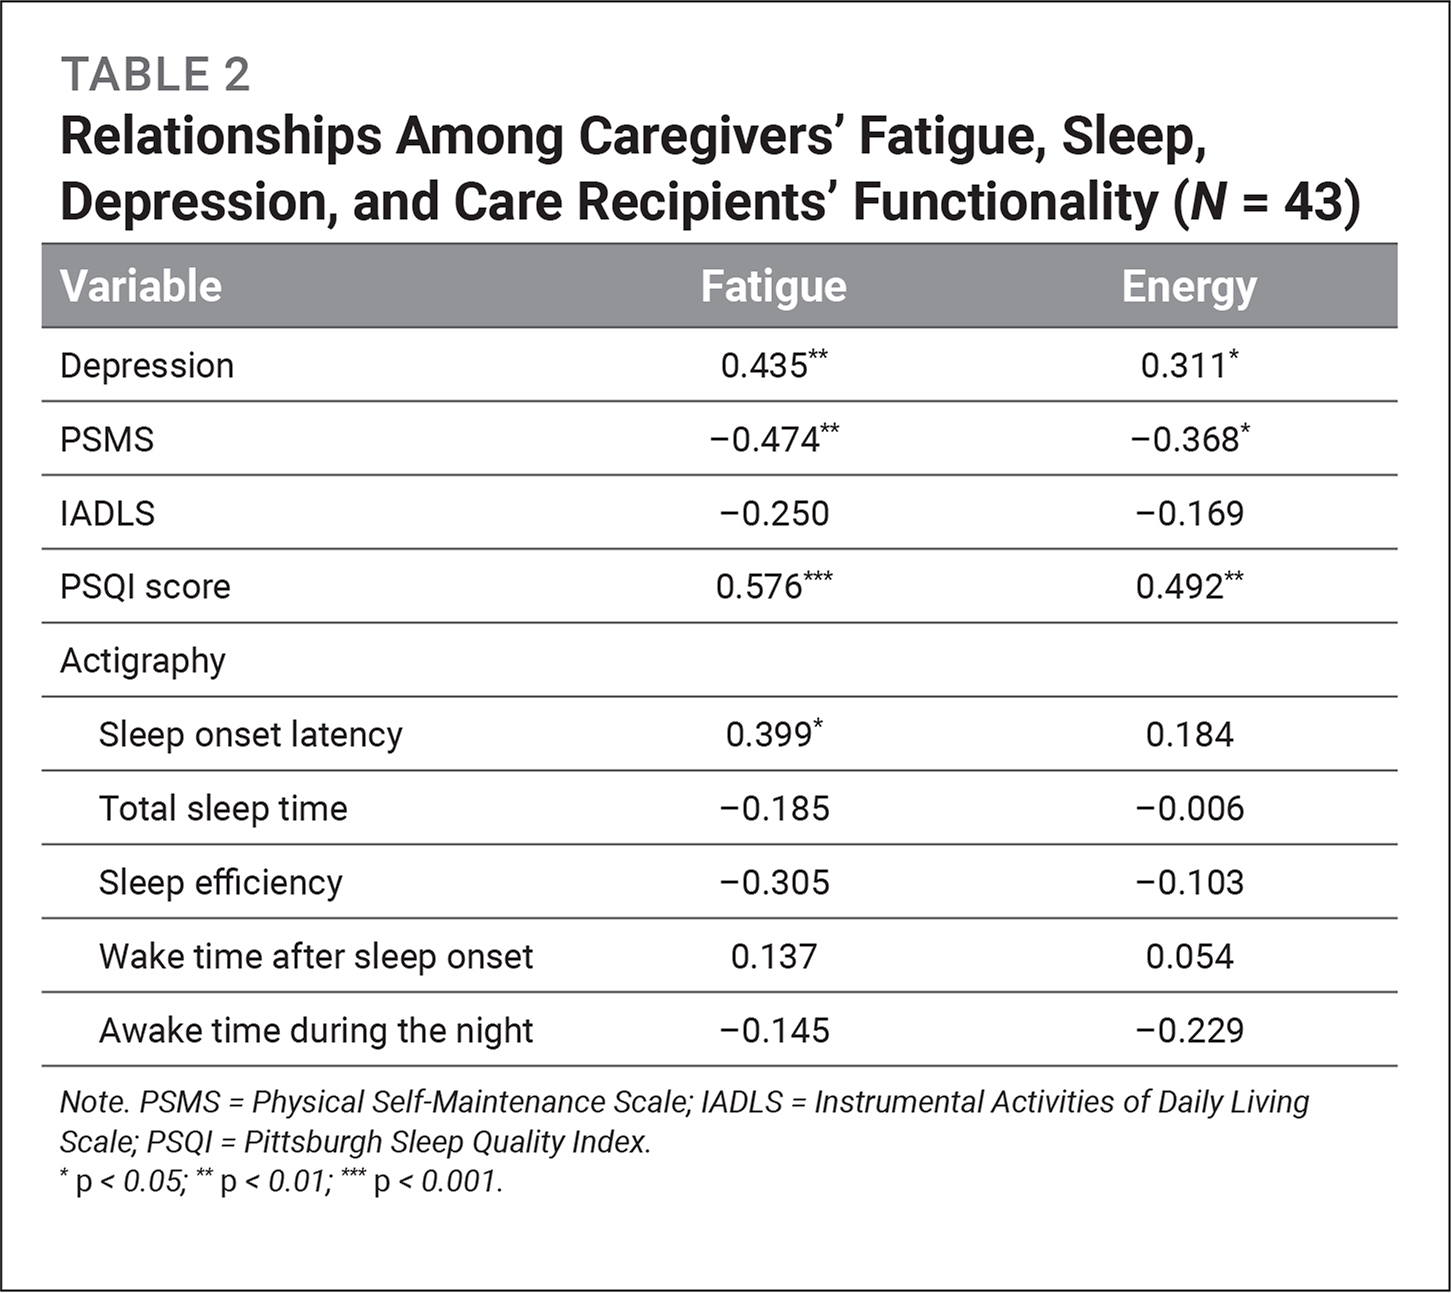 Relationships Among Caregivers' Fatigue, Sleep, Depression, and Care Recipients' Functionality (N = 43)